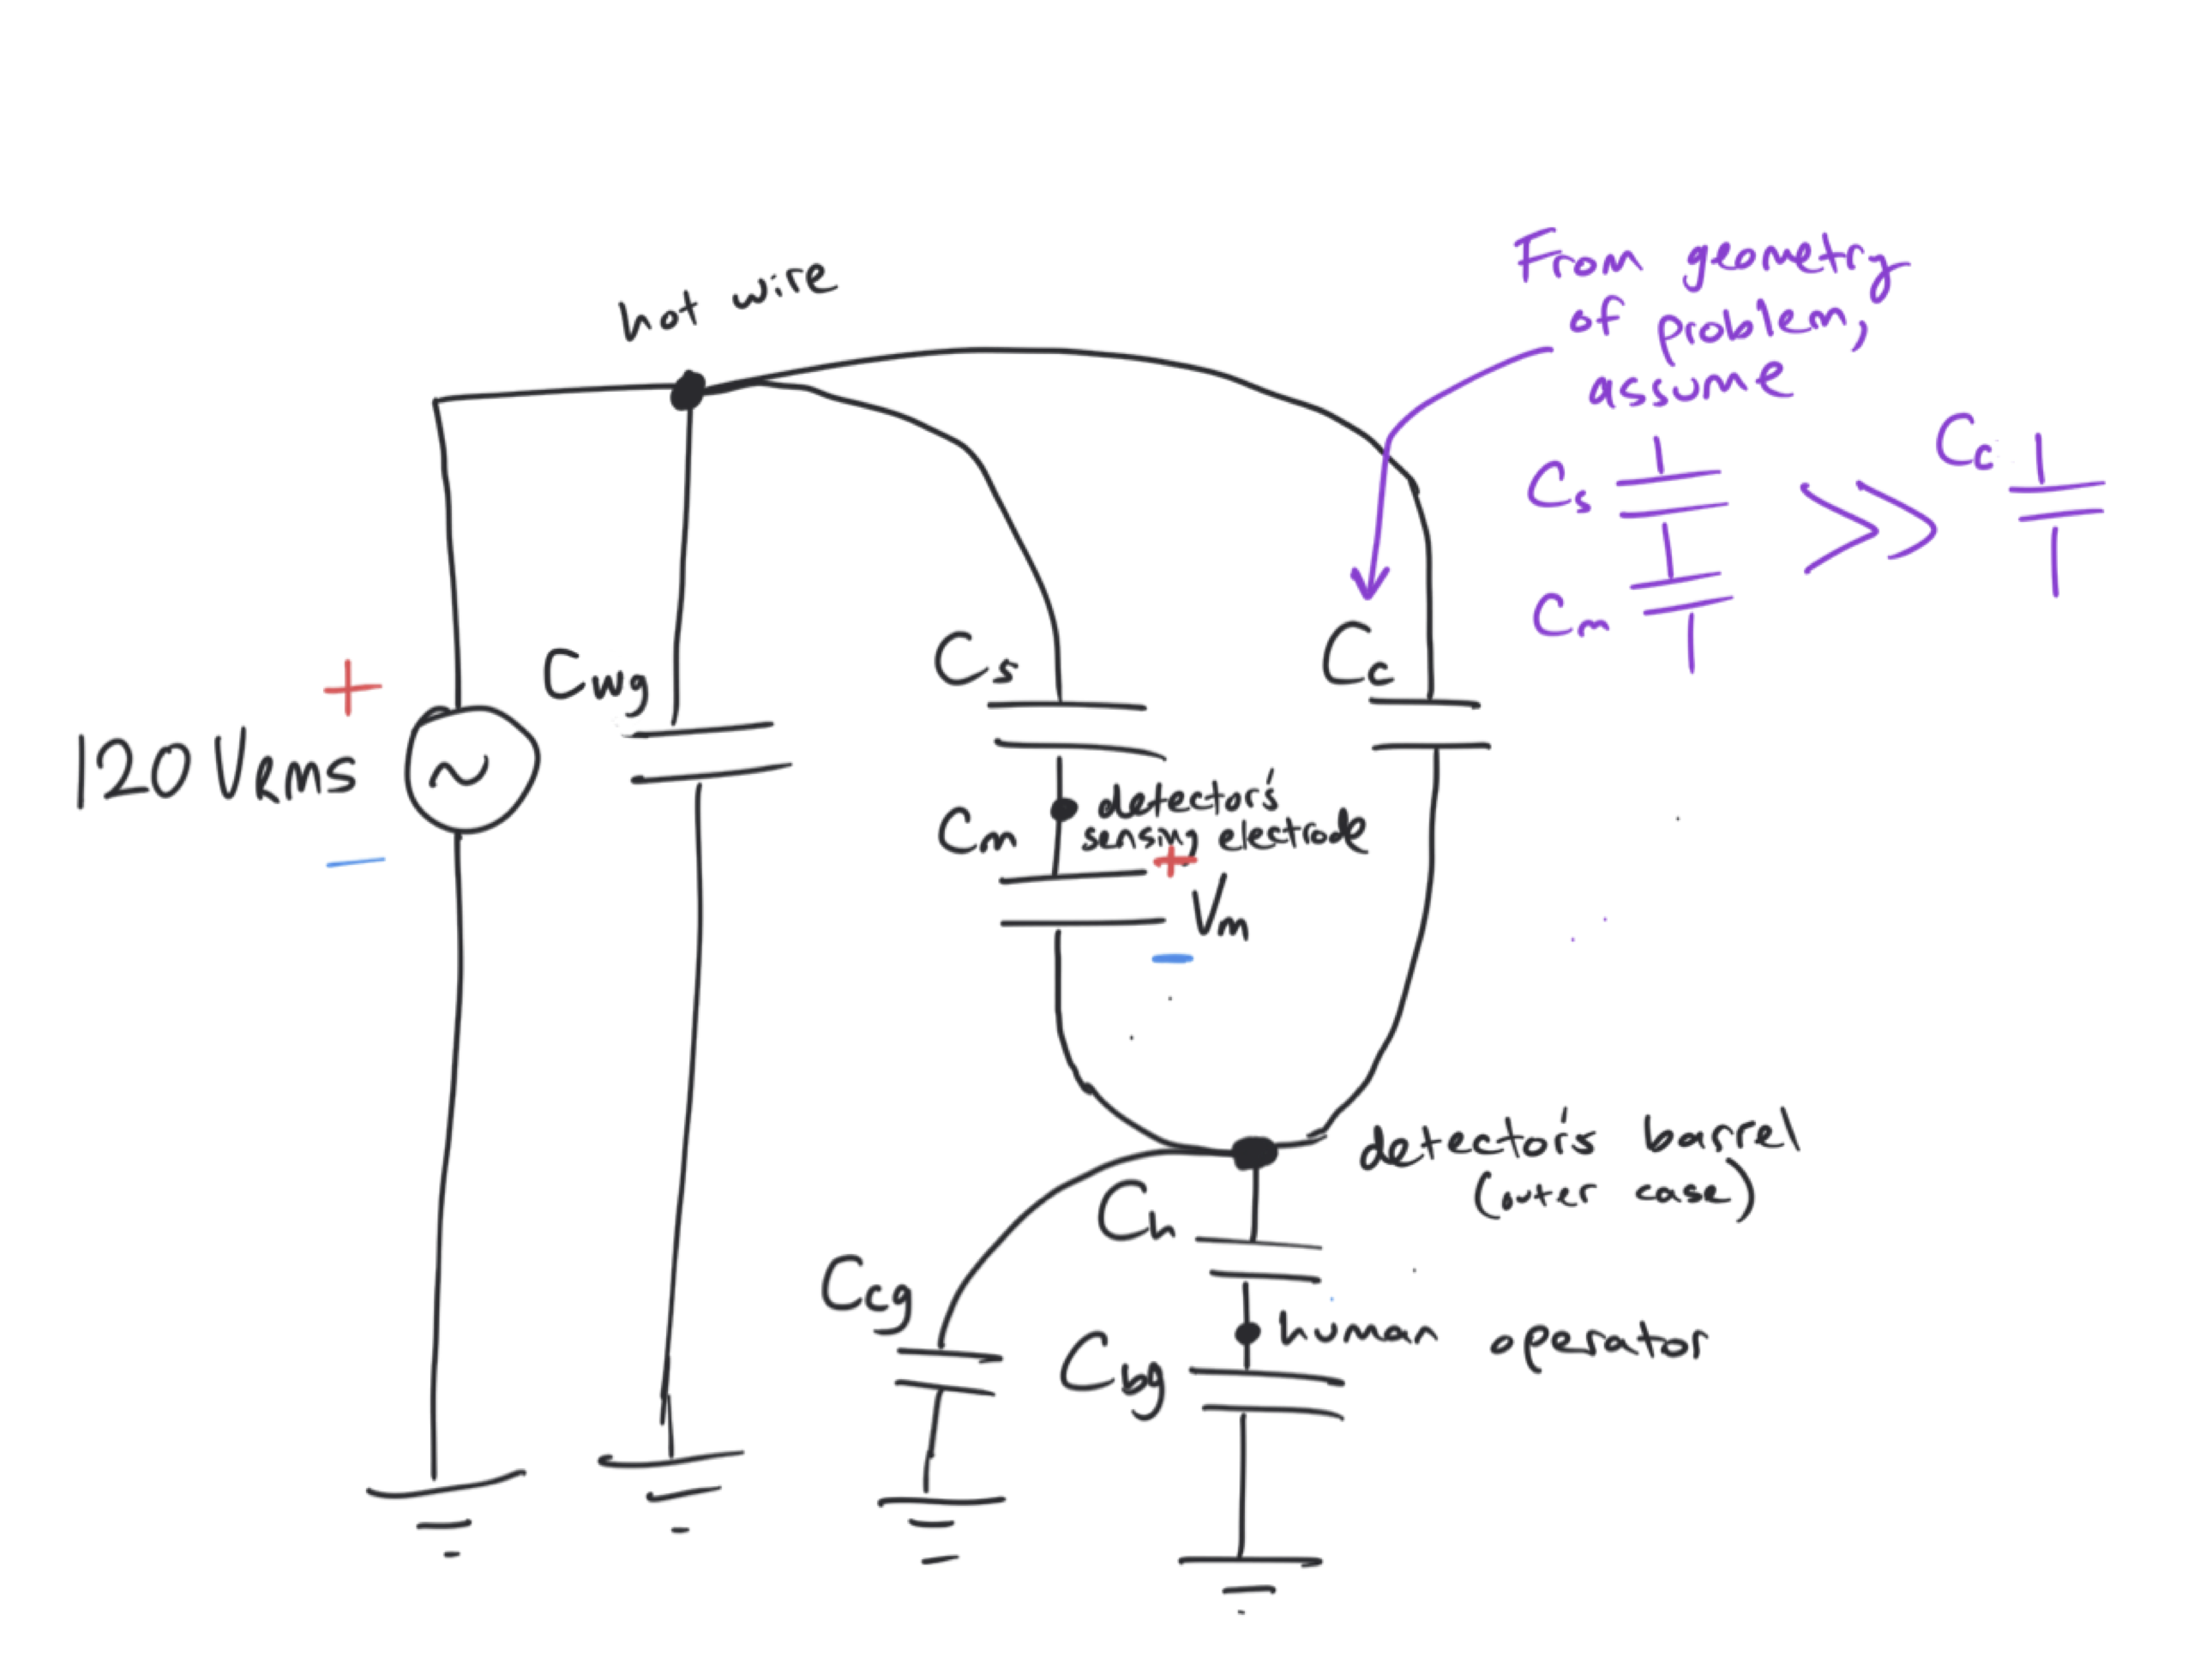 Re-drawn simplified block diagram to look more like a conventional circuit  schematic (cartoon drawings are removed). pic